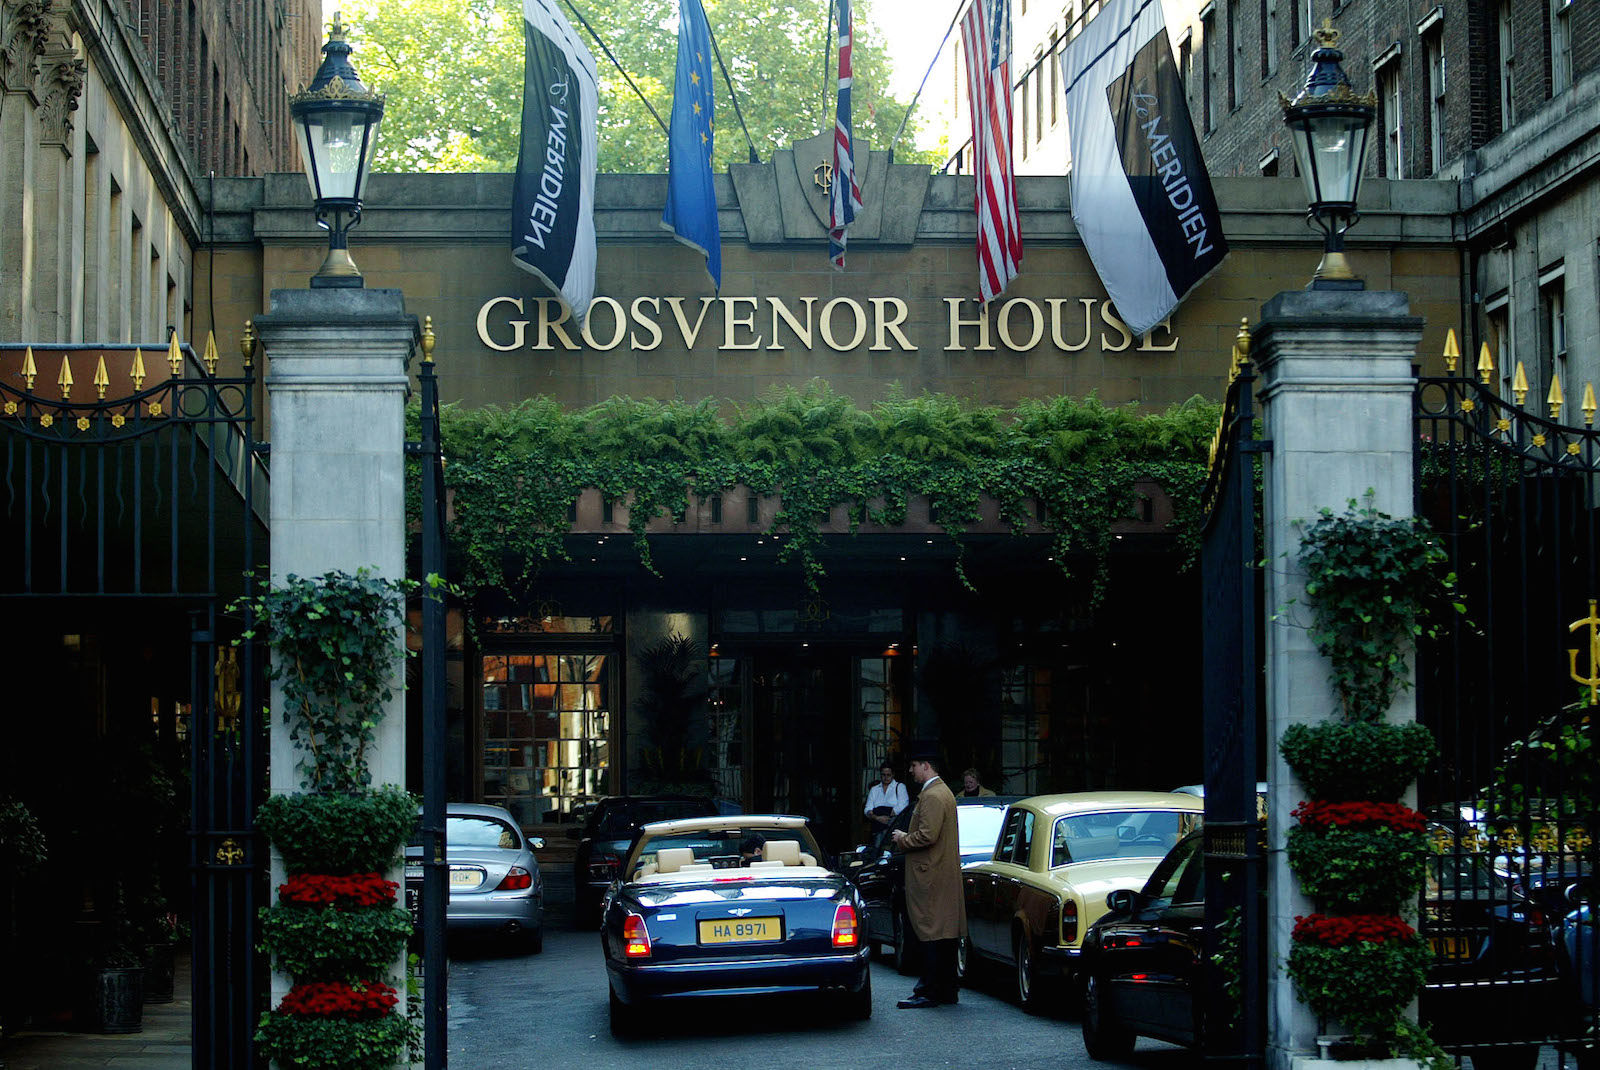 THE ENTRANCE TO THE GROSVENOR HOUSE HOTEL IS SEEN IN PARK LANE IN LONDON.